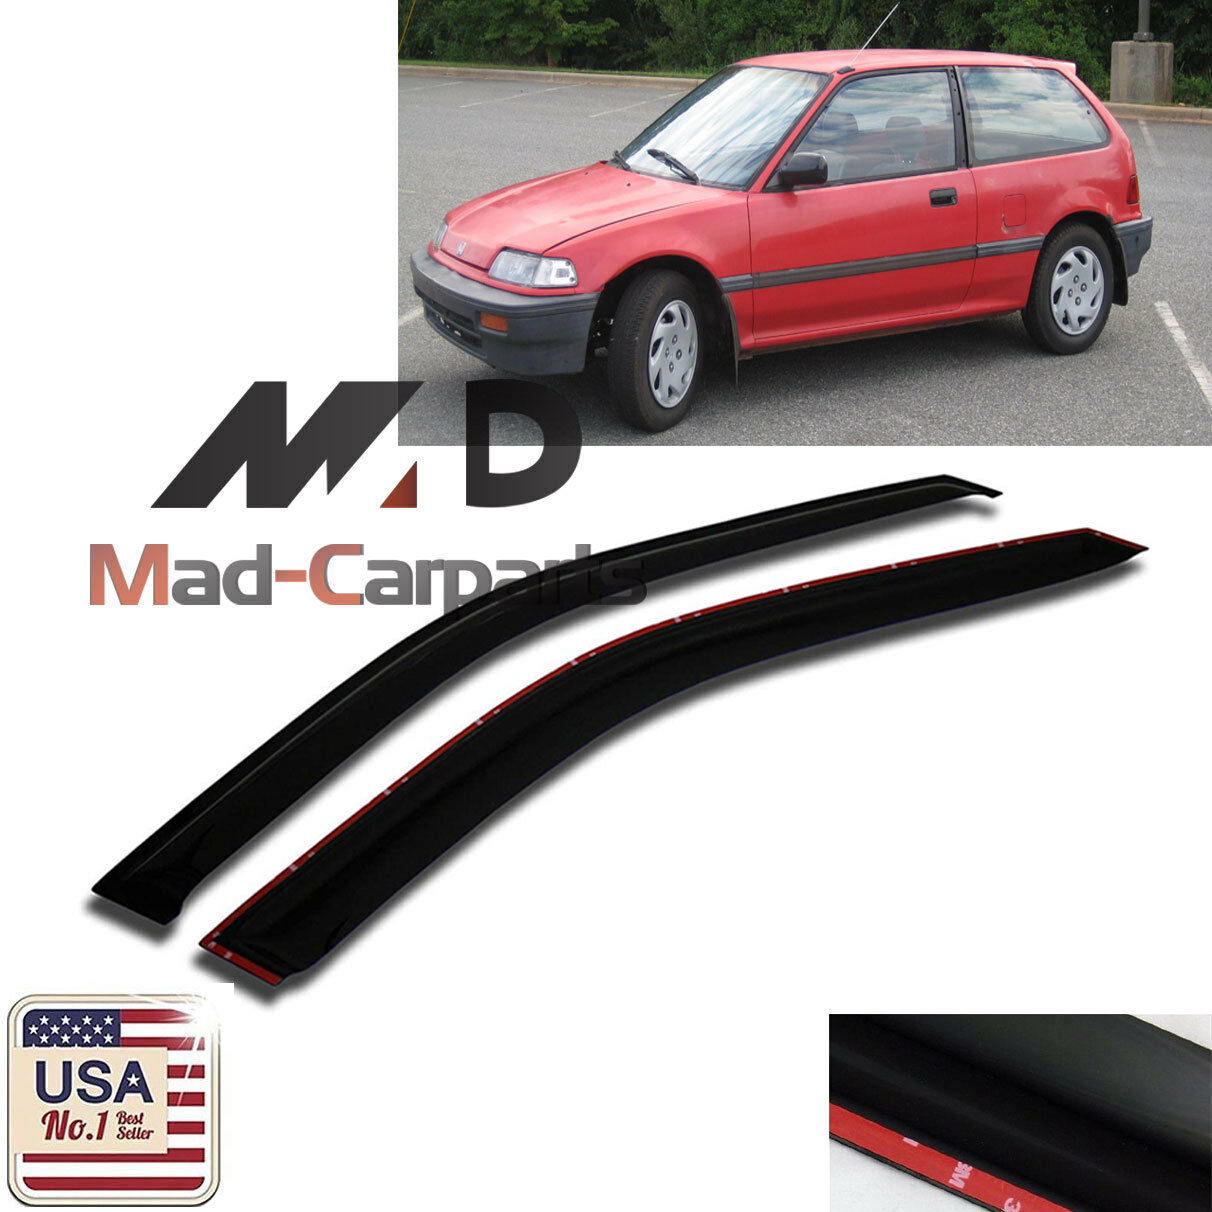 MAD 2pc Window Deflector Visor Shade Rain Guard For 1988-1991 Honda Civic Coupe